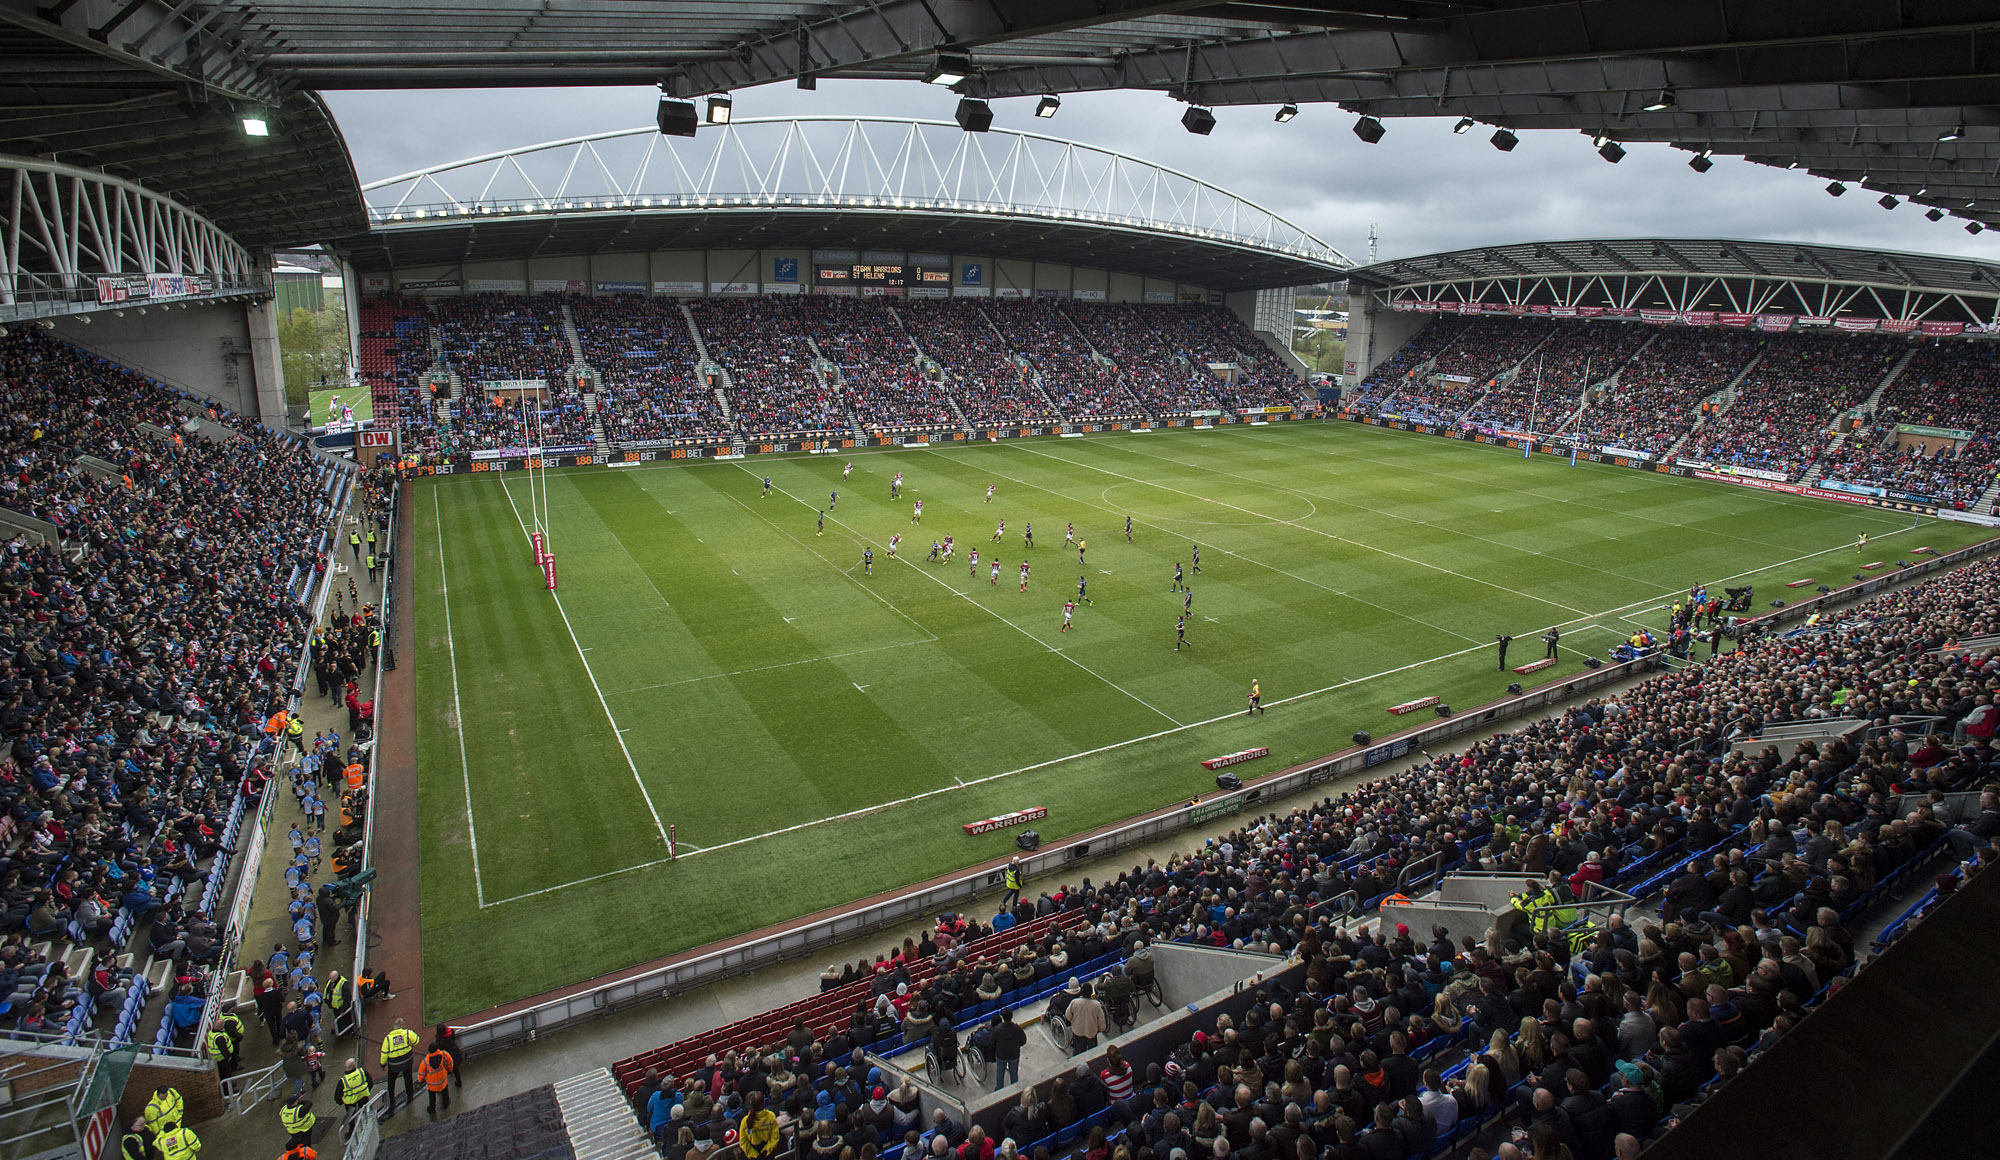 20,000 Derby Tickets Sold